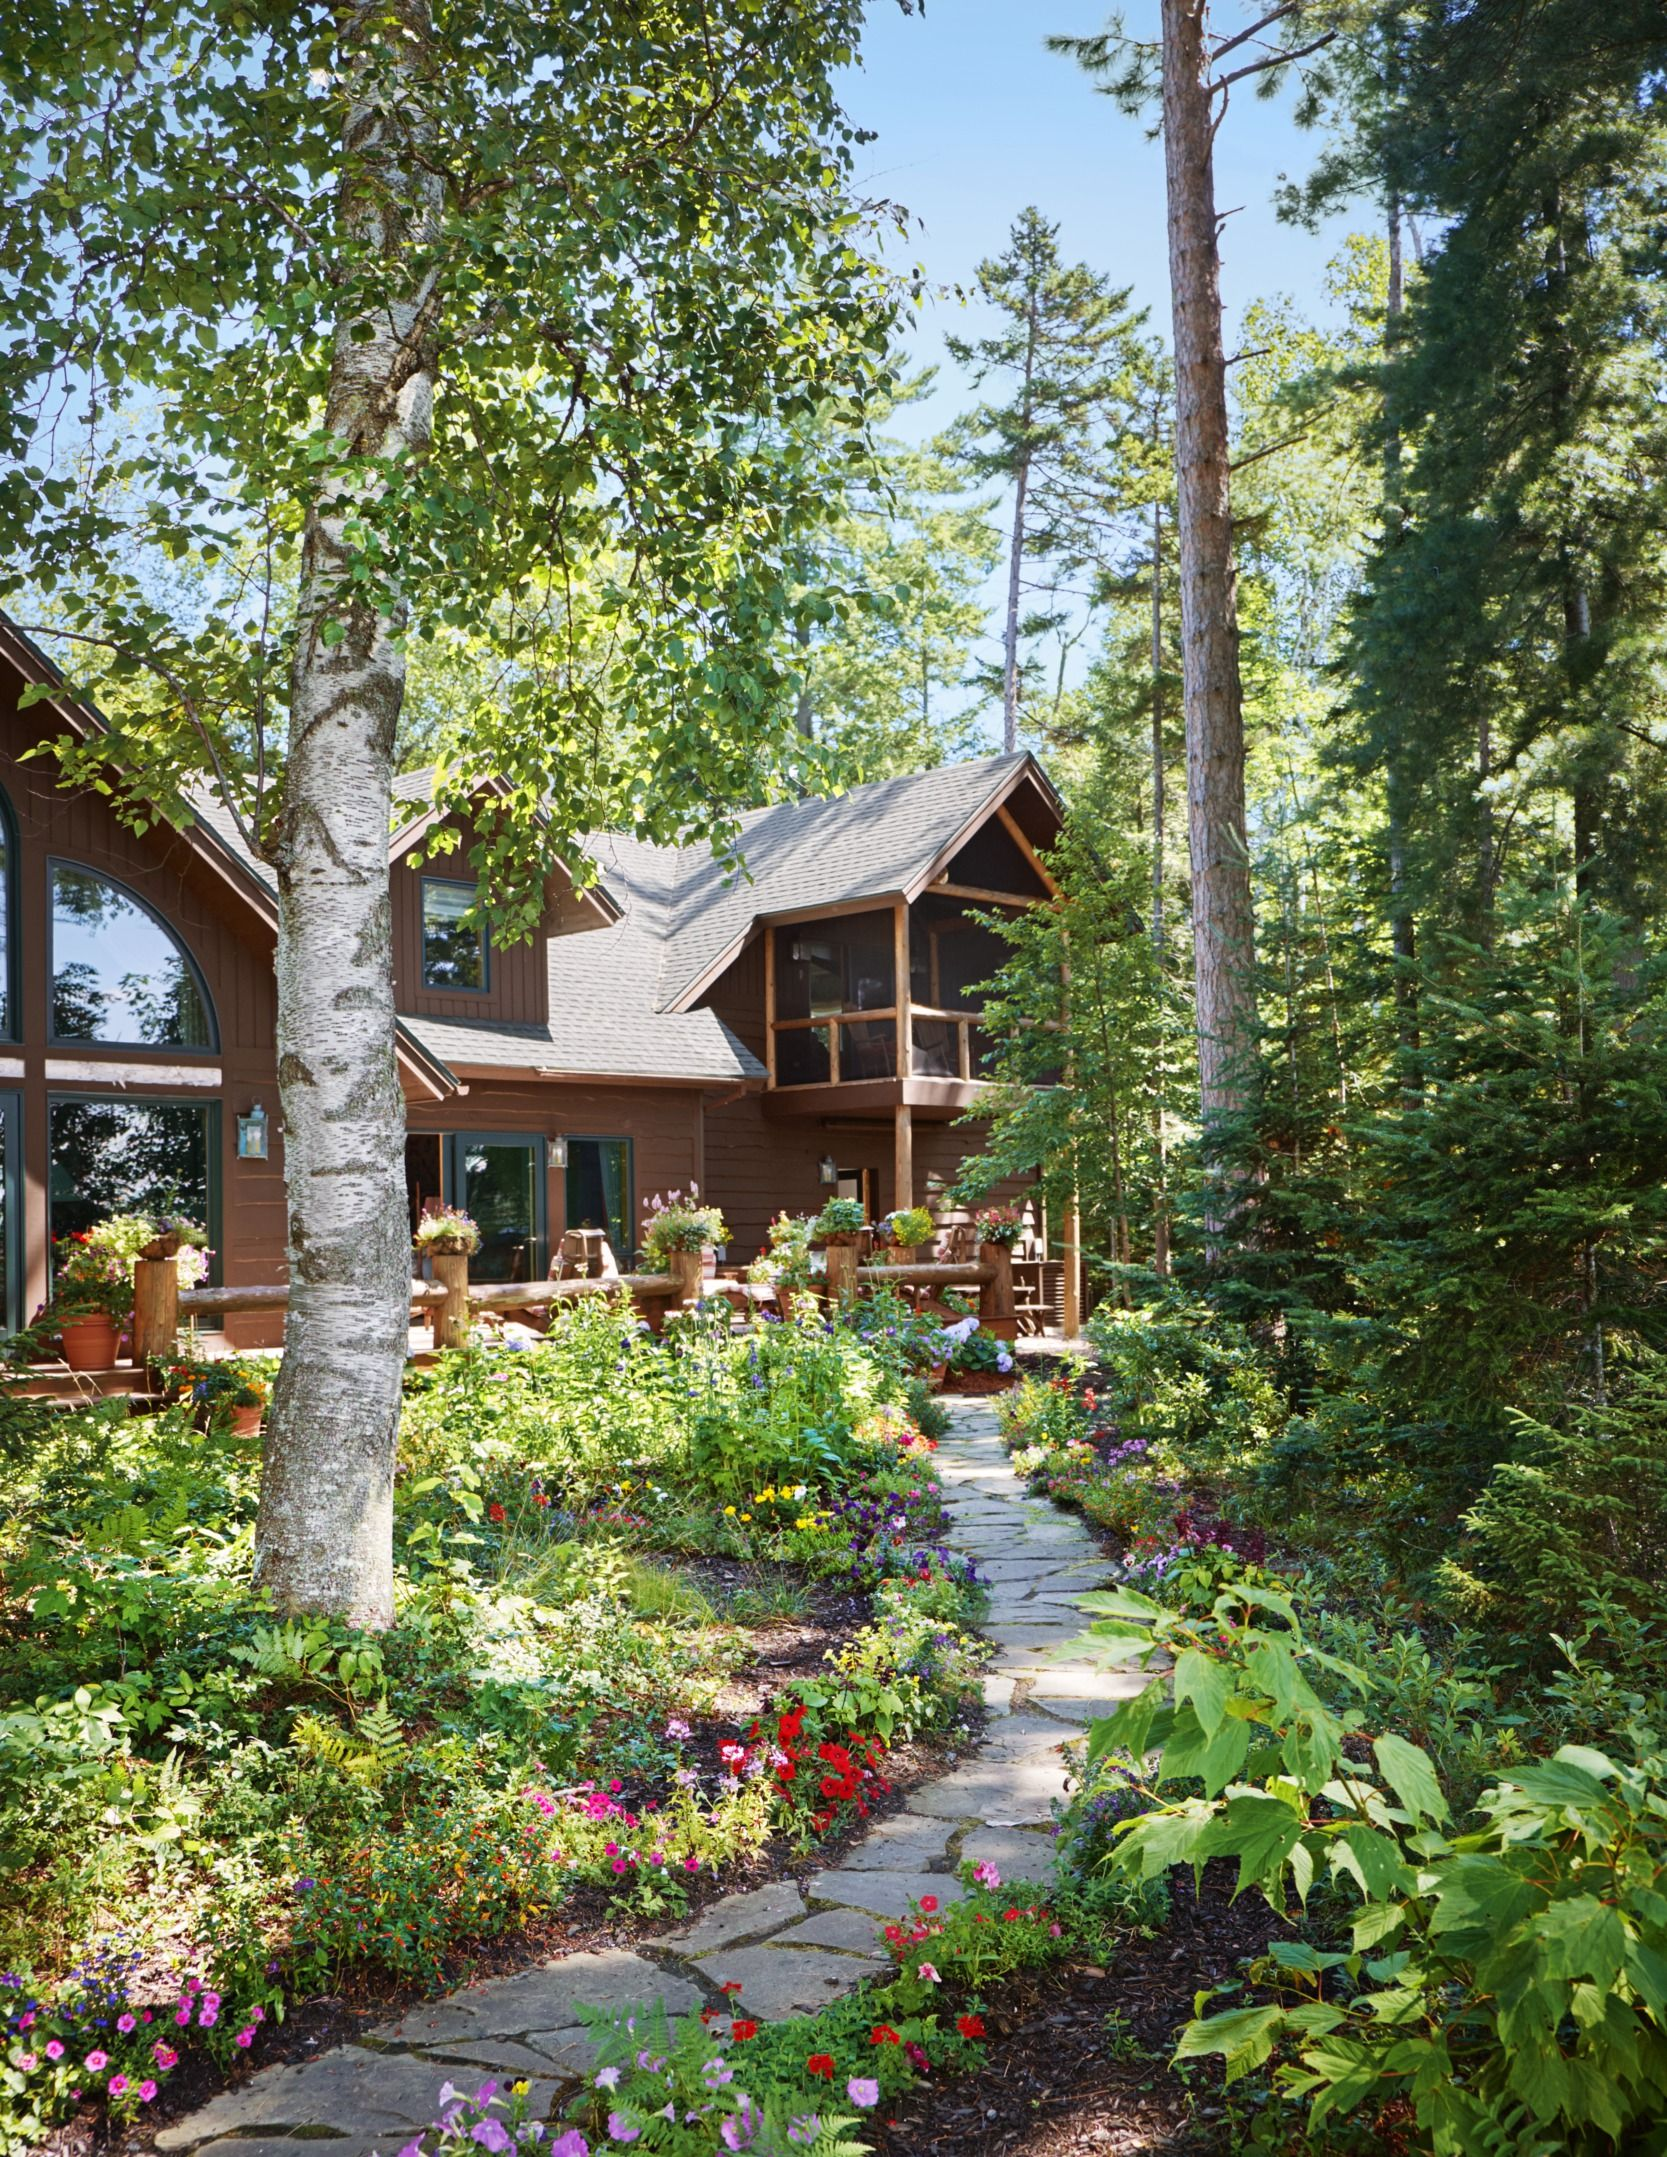 This Adirondack Cabin Will Make You Feel Like You're Back at Summer Camp